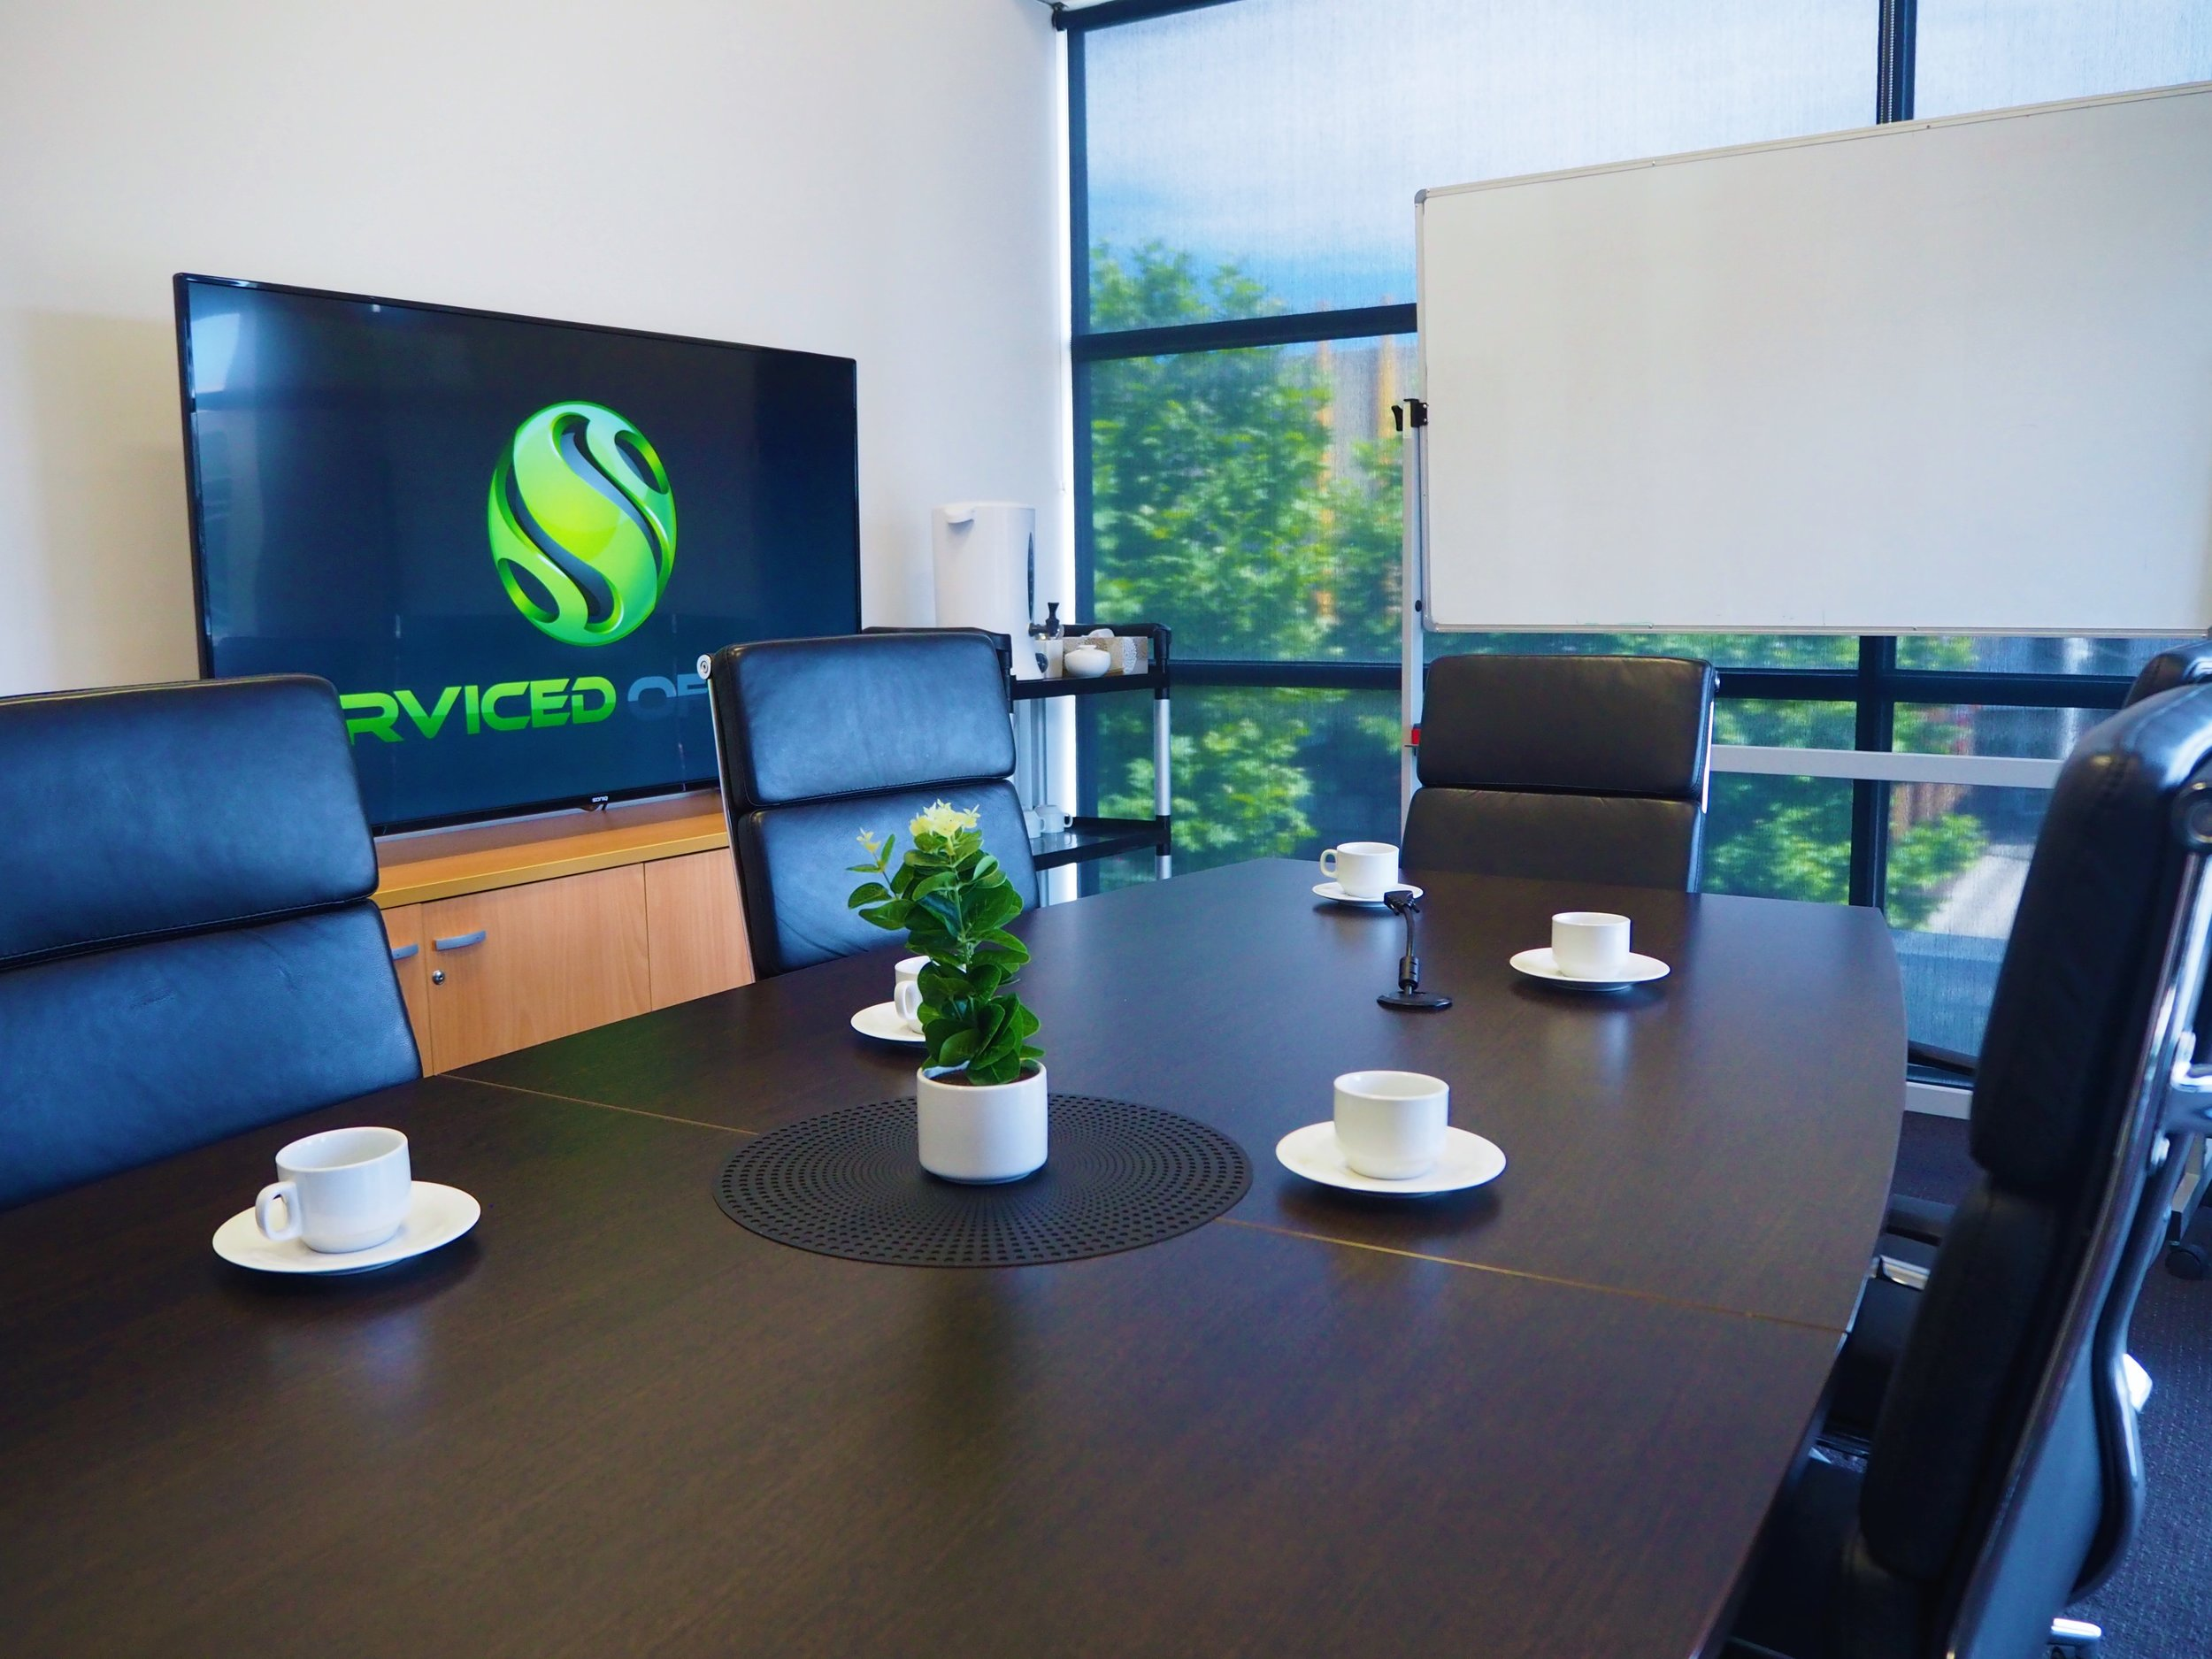 Boardroom and Meeting Rooms - Boardrooms and Meeting Rooms are equipped with a monitor, water cooler, and complimentary tea and coffee. Catering is also available upon request.*Some paid services such as Boardroom hire may be included in an Agreement as complimentary hours per month.